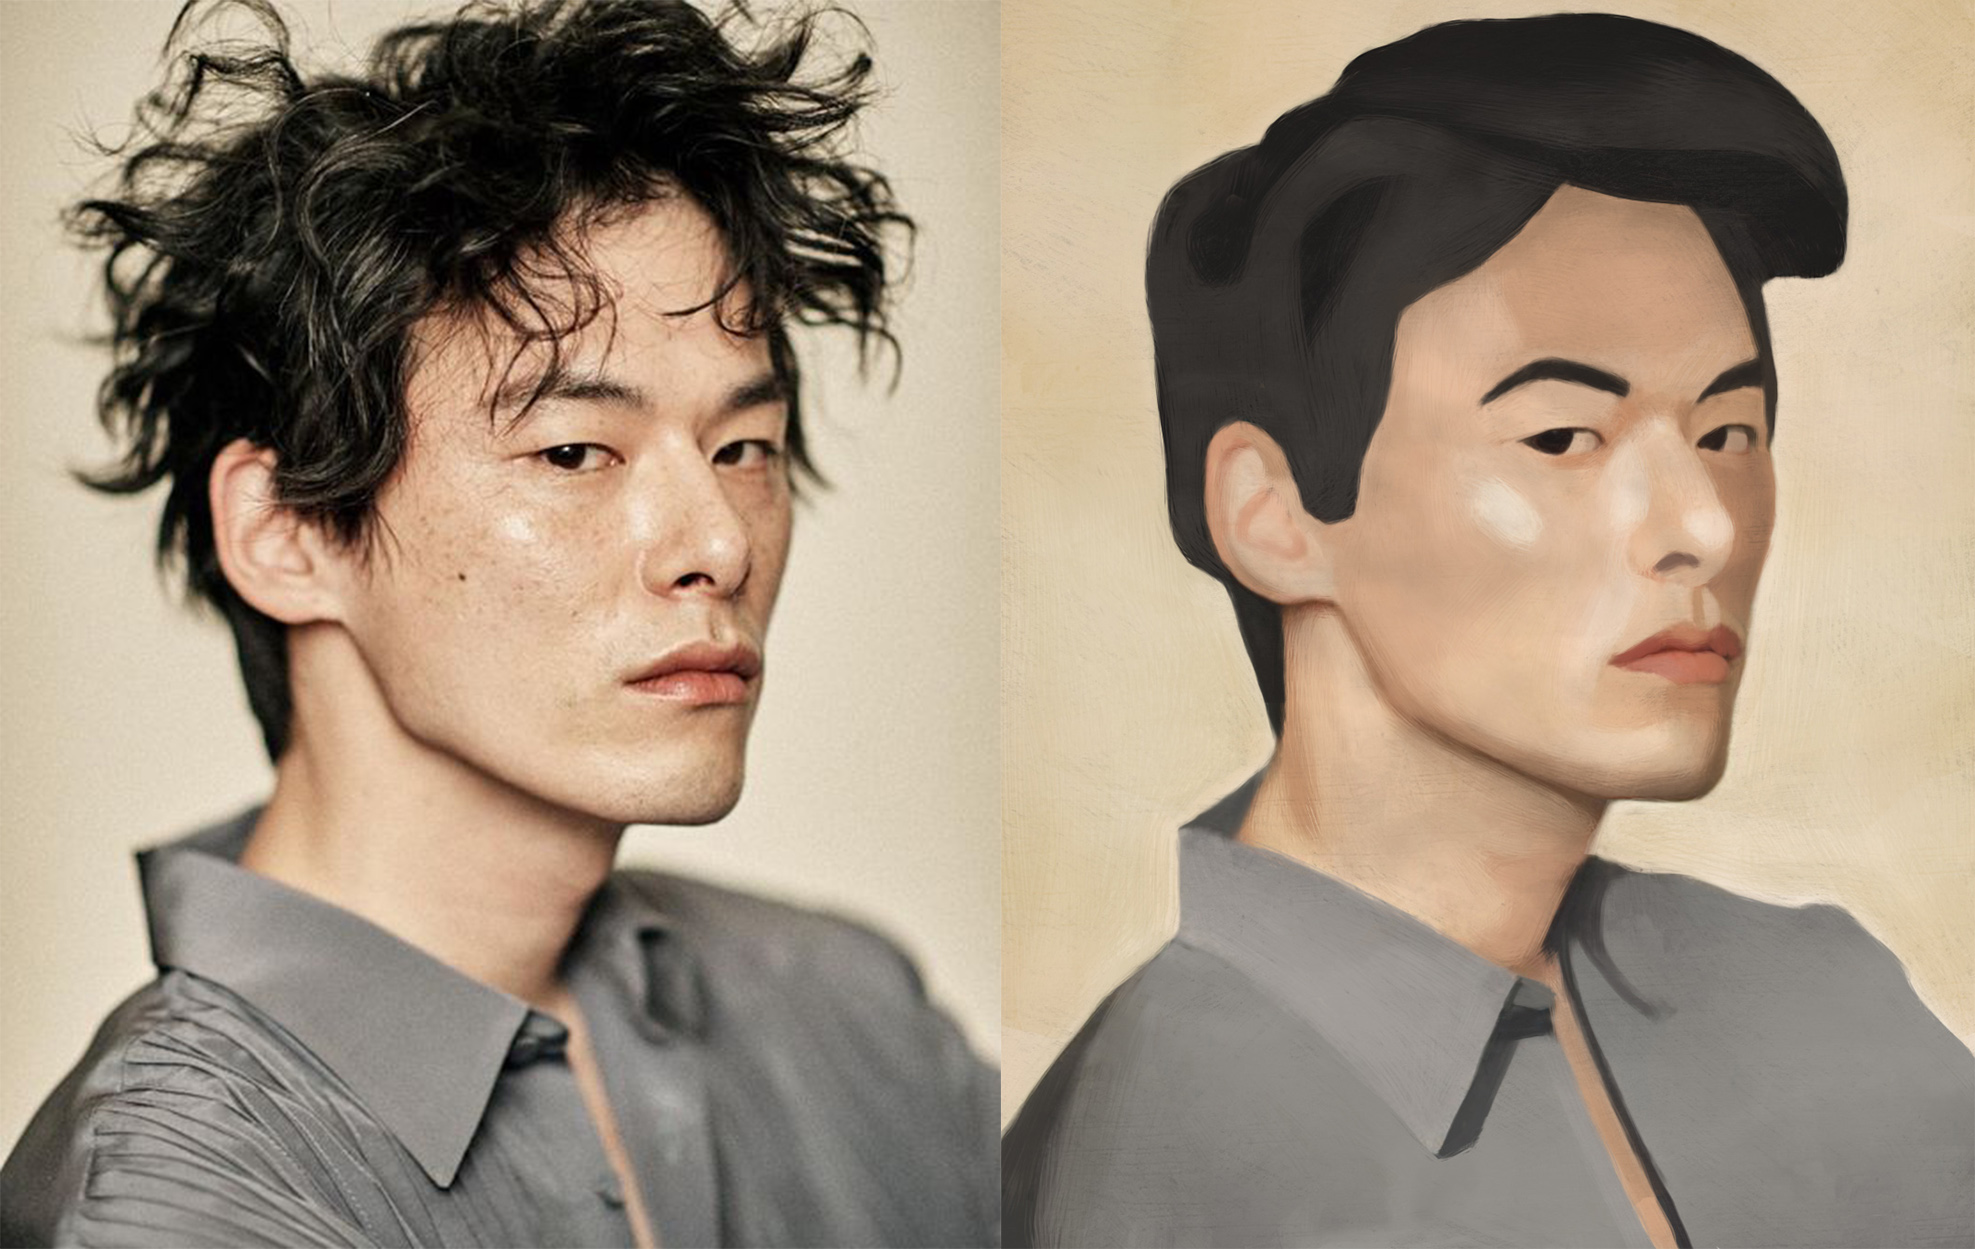 I will transform your photo into a professional digital painting